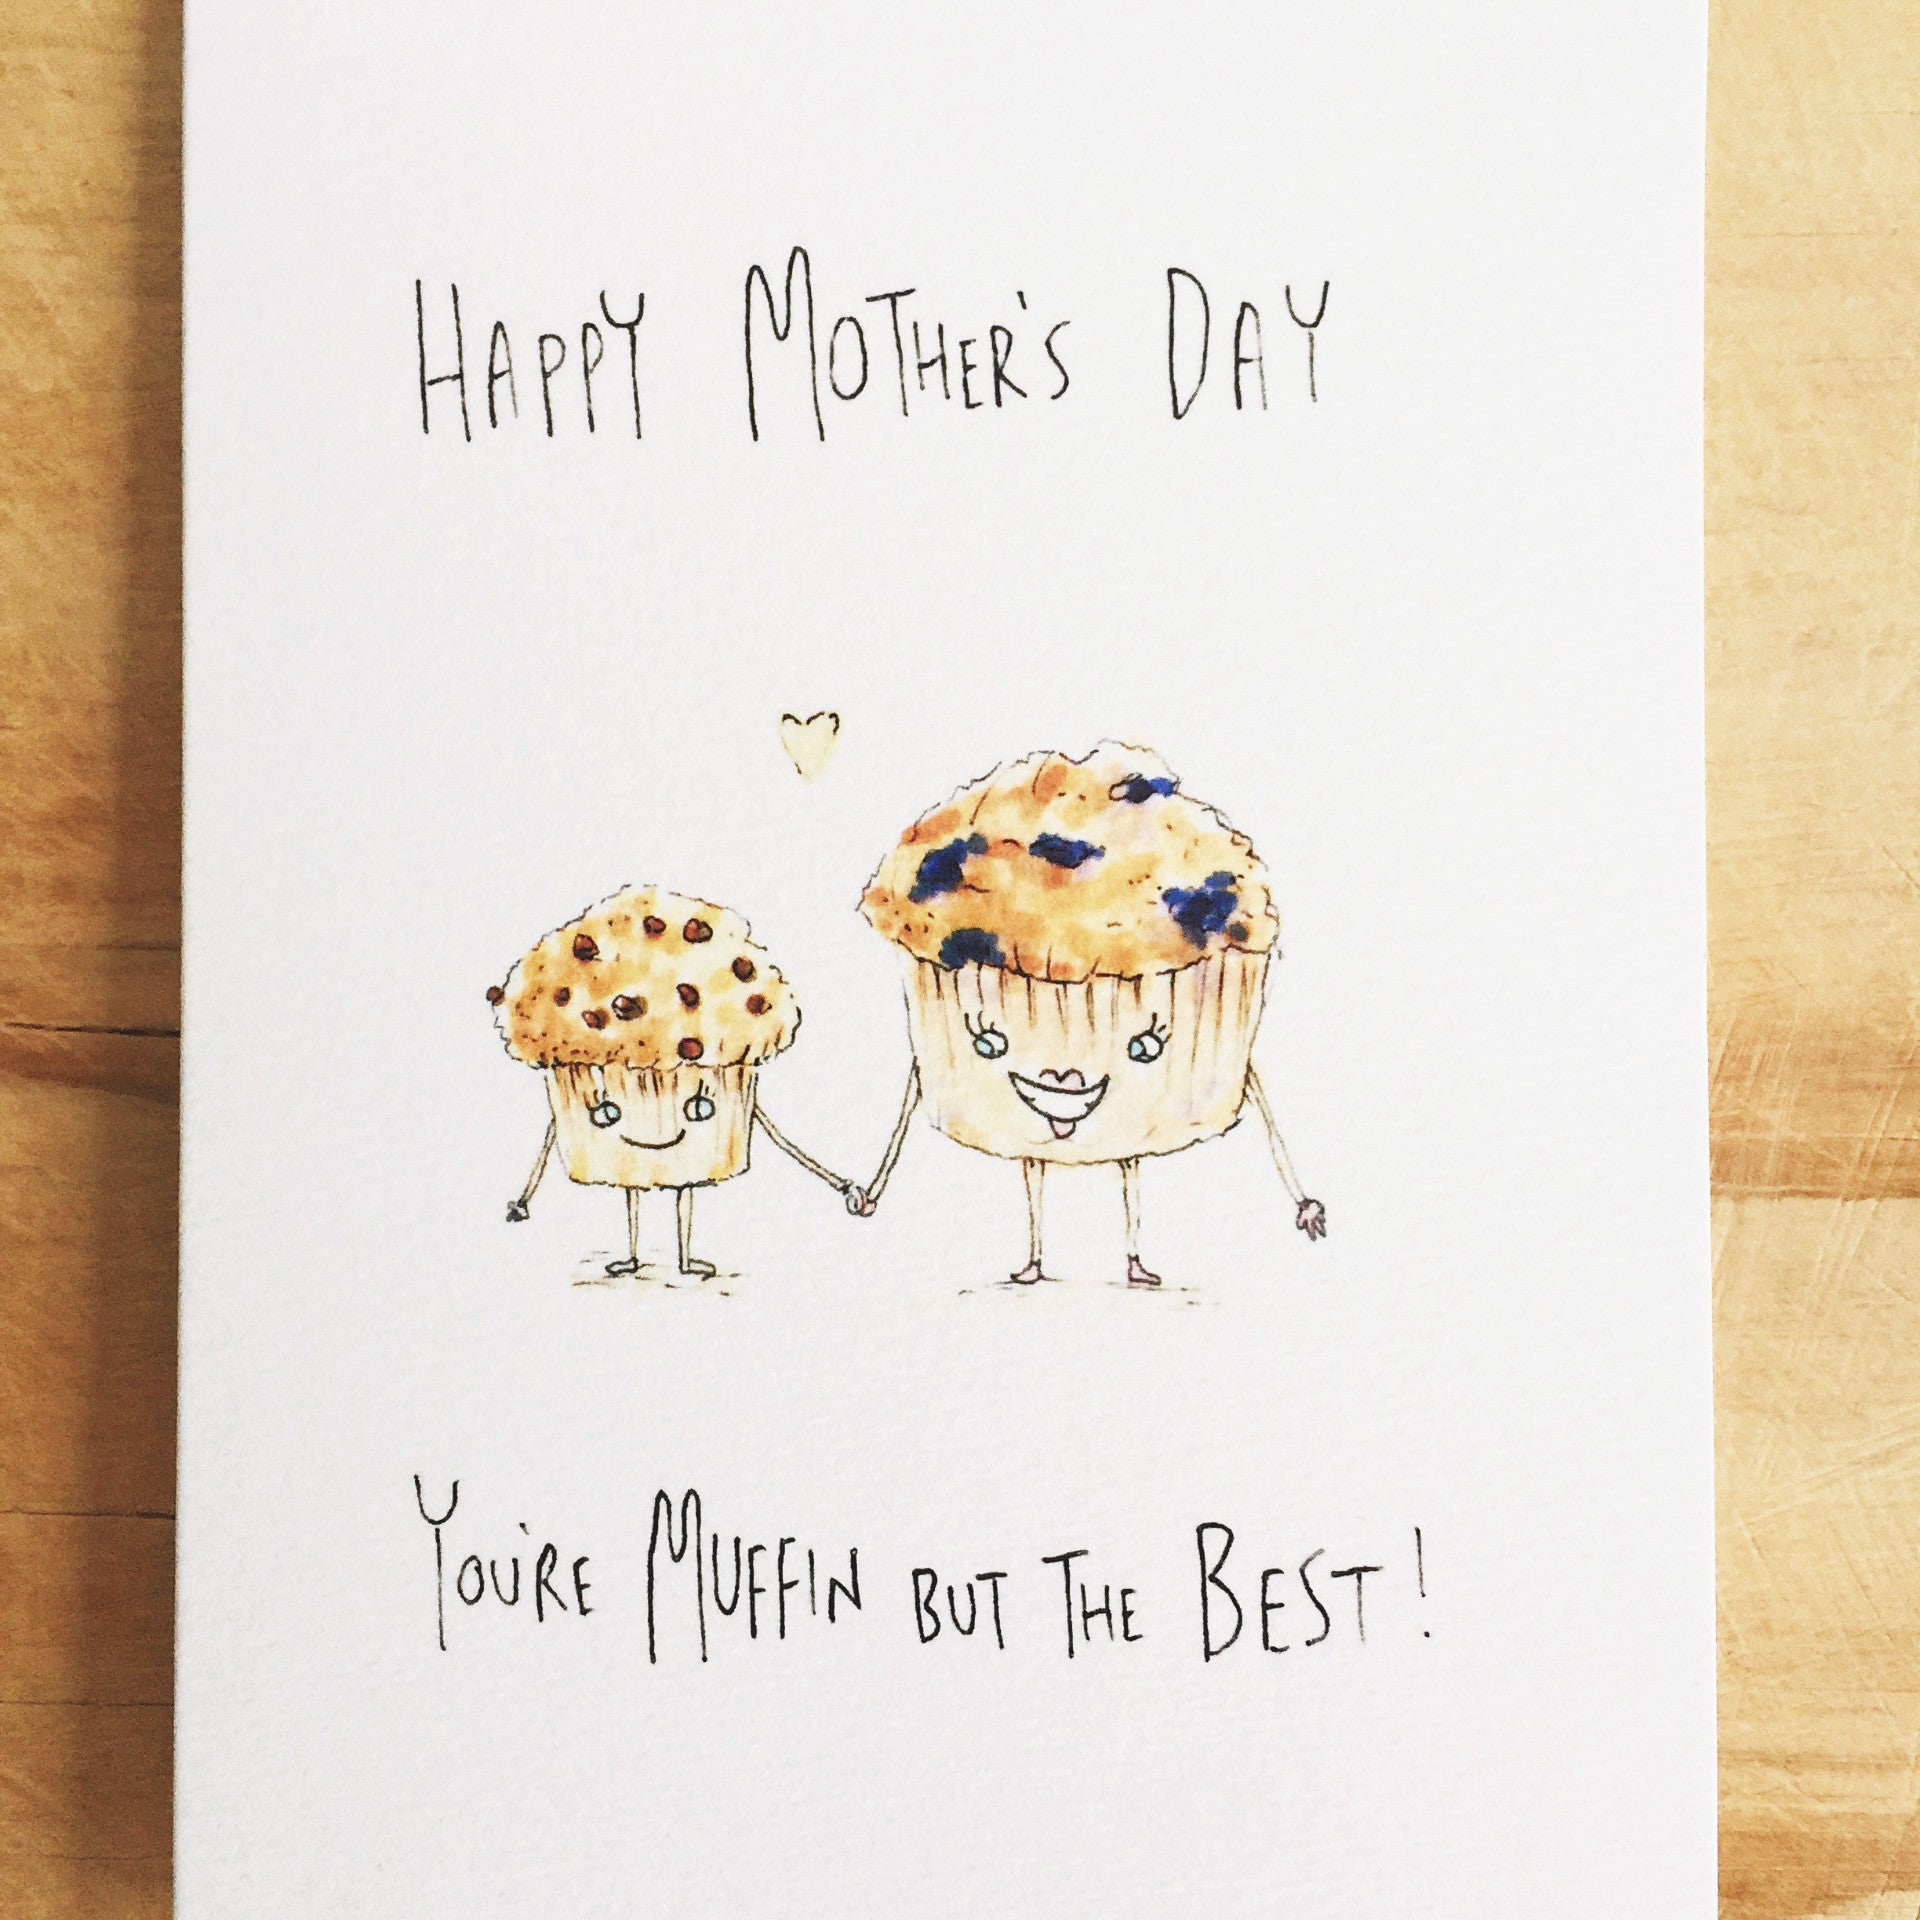 Happy Mother's Day, You're Muffin But The Best - Well Drawn